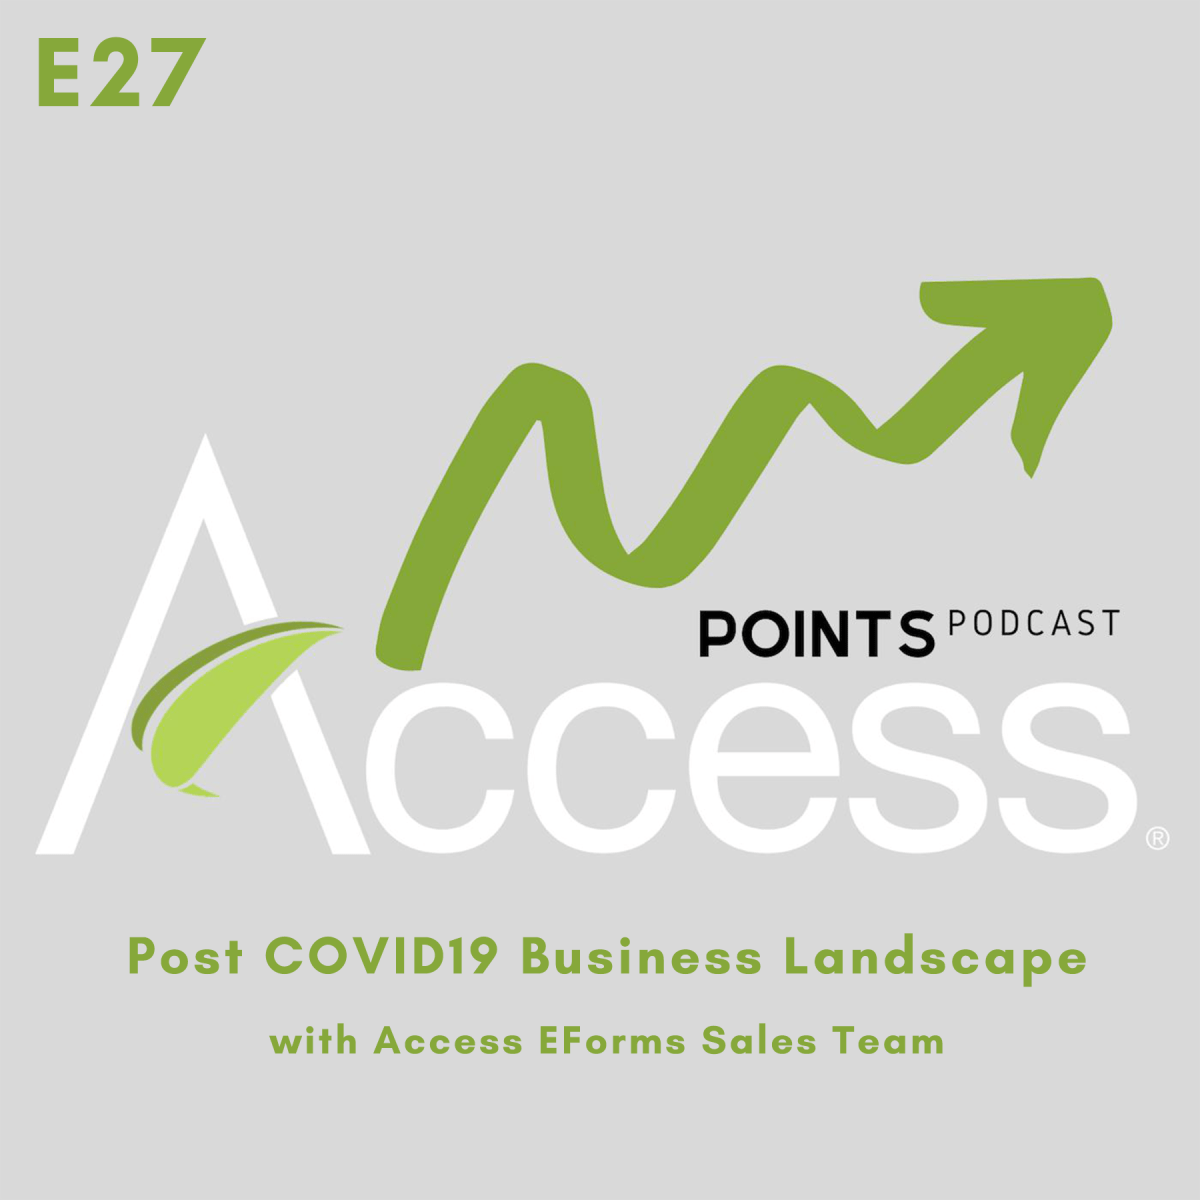 Access Points Podcast: Episode 27 – Post COVID19 Business Landscape